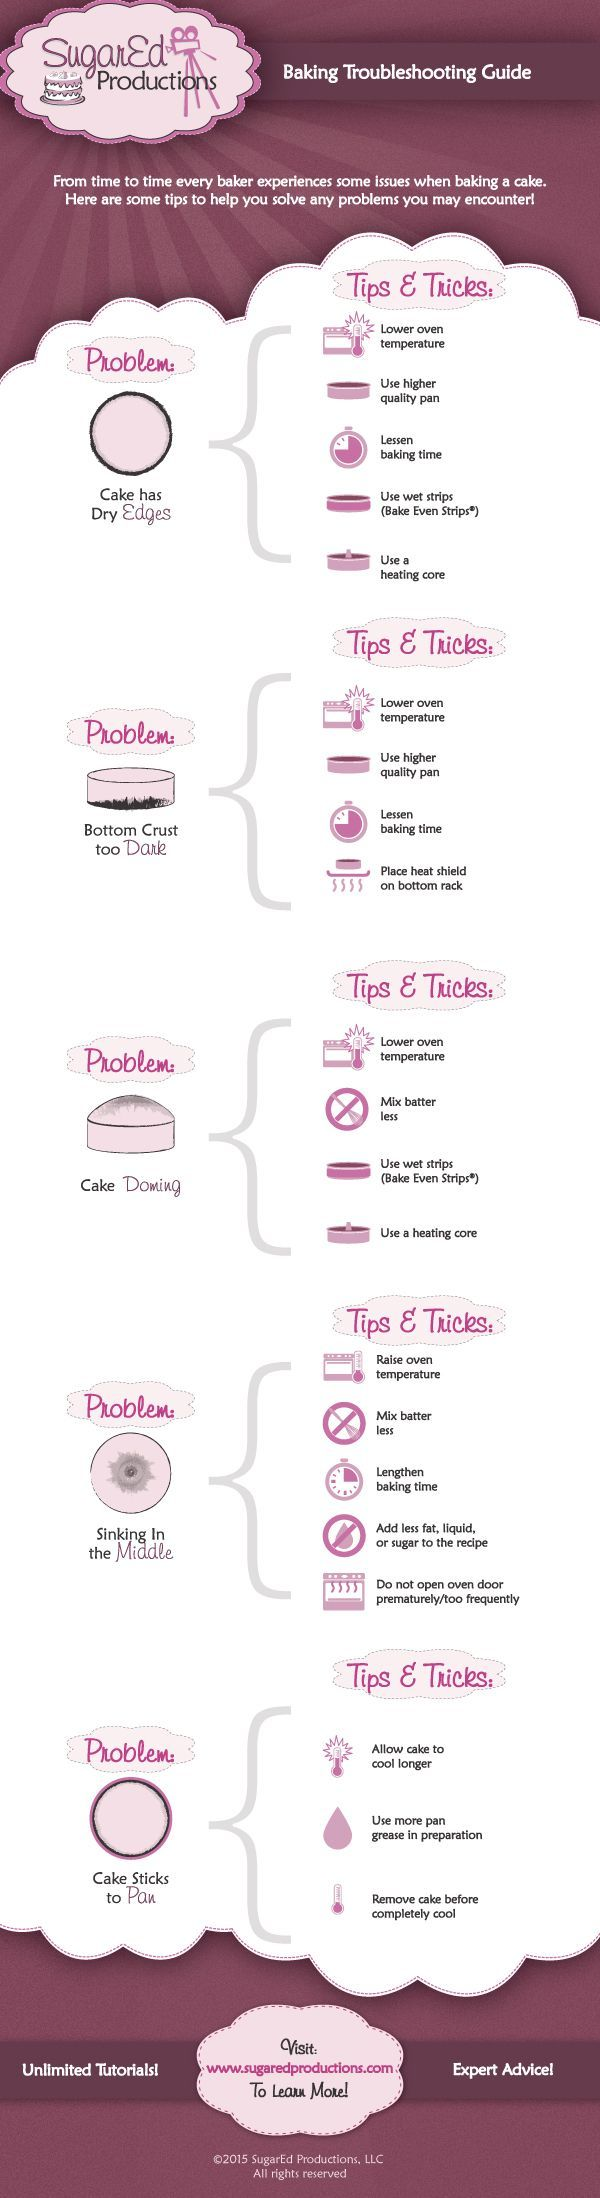 Baking Troubleshooting Guide from SugarEd Productions (Cake Recipes For Decorating)